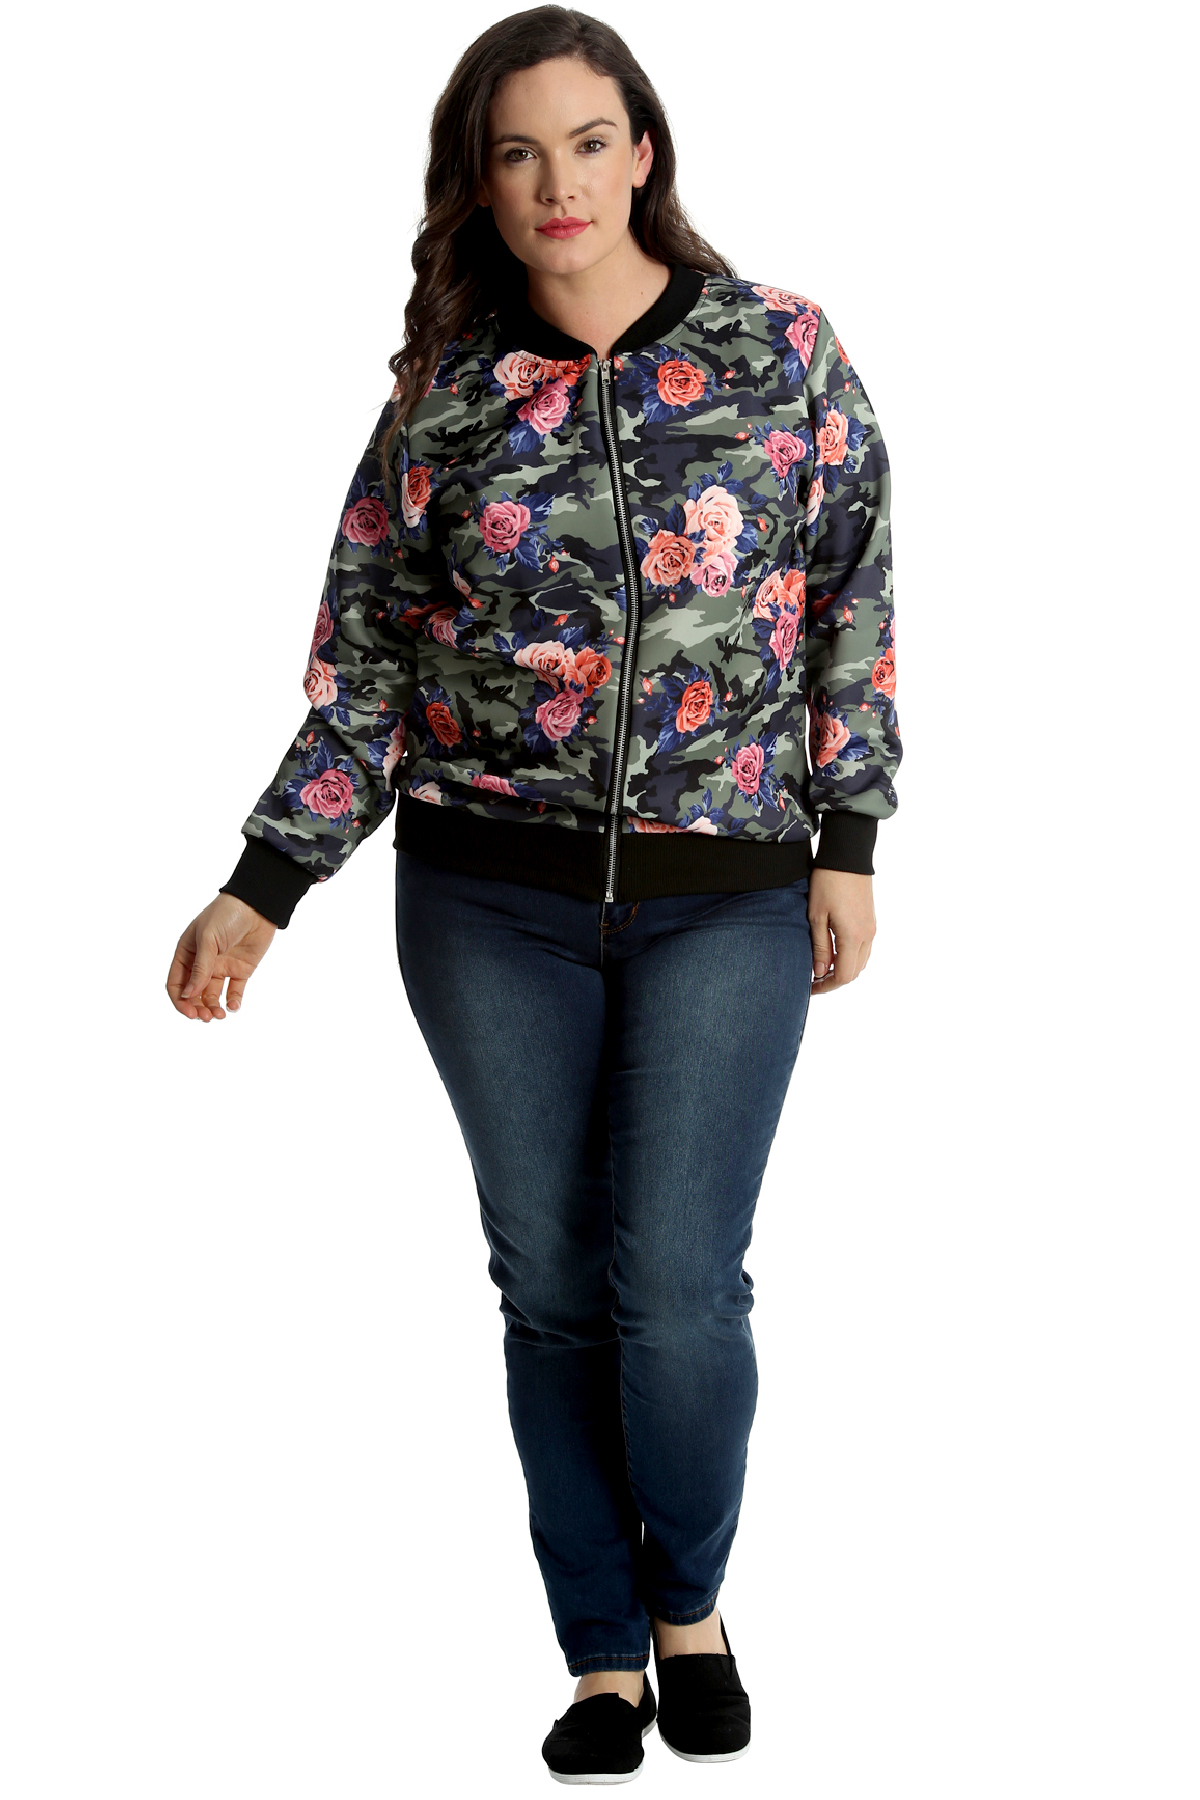 548e2765626 New Womens Plus Size Bomber Jacket Ladies Camouflage Floral Print ...